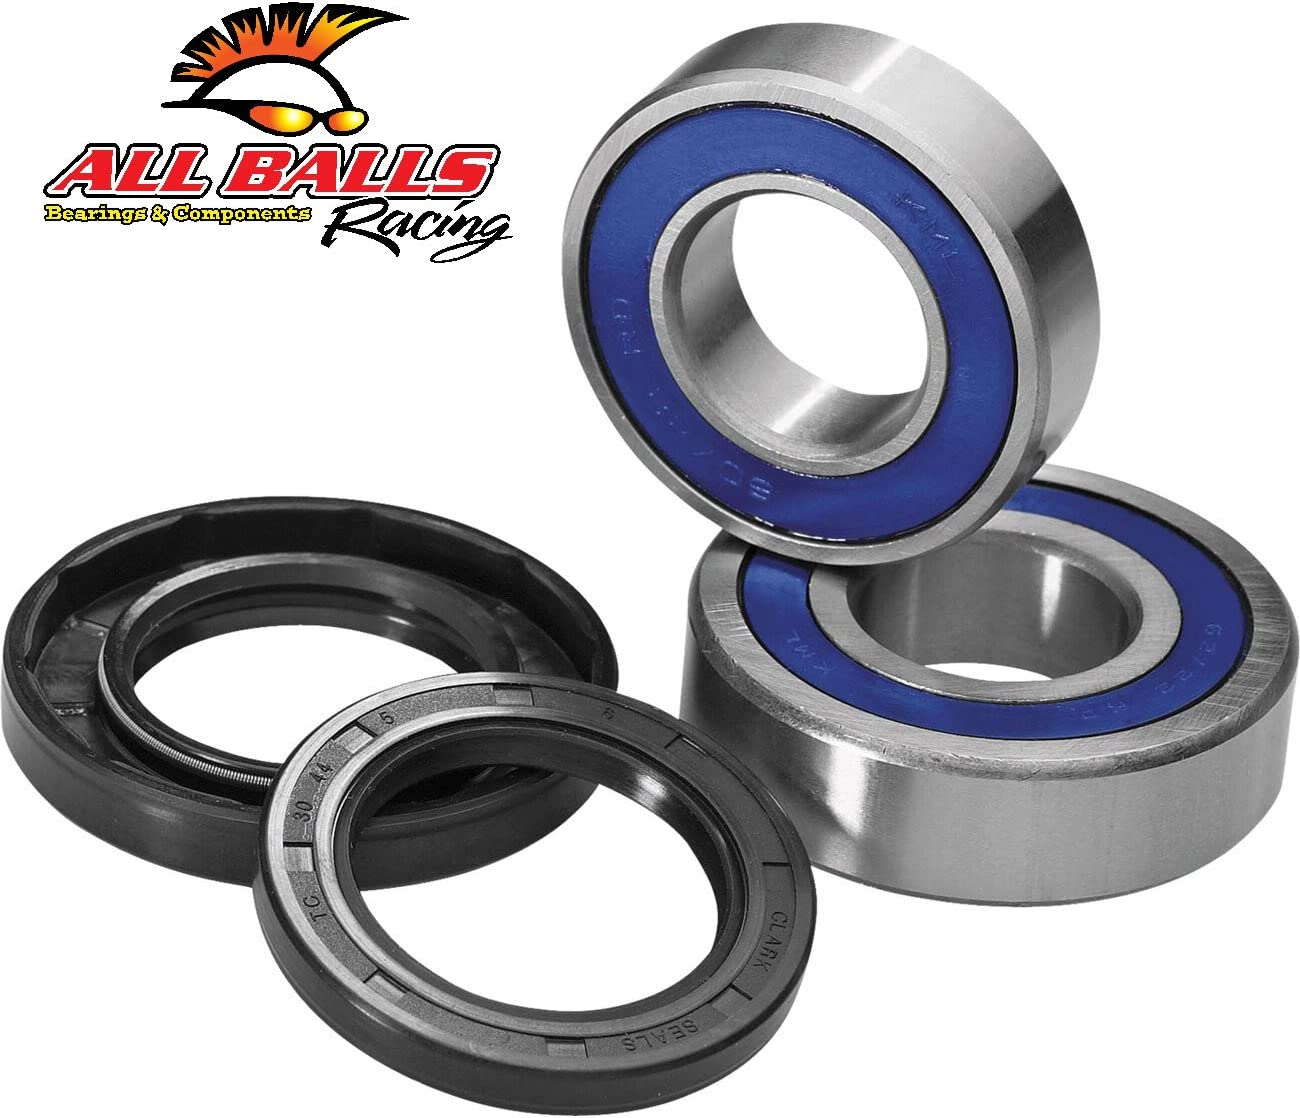 Front Wheel Bearing Kit Replacement For 2006-2010 Kawasaki Ninja 650R Motorcycle